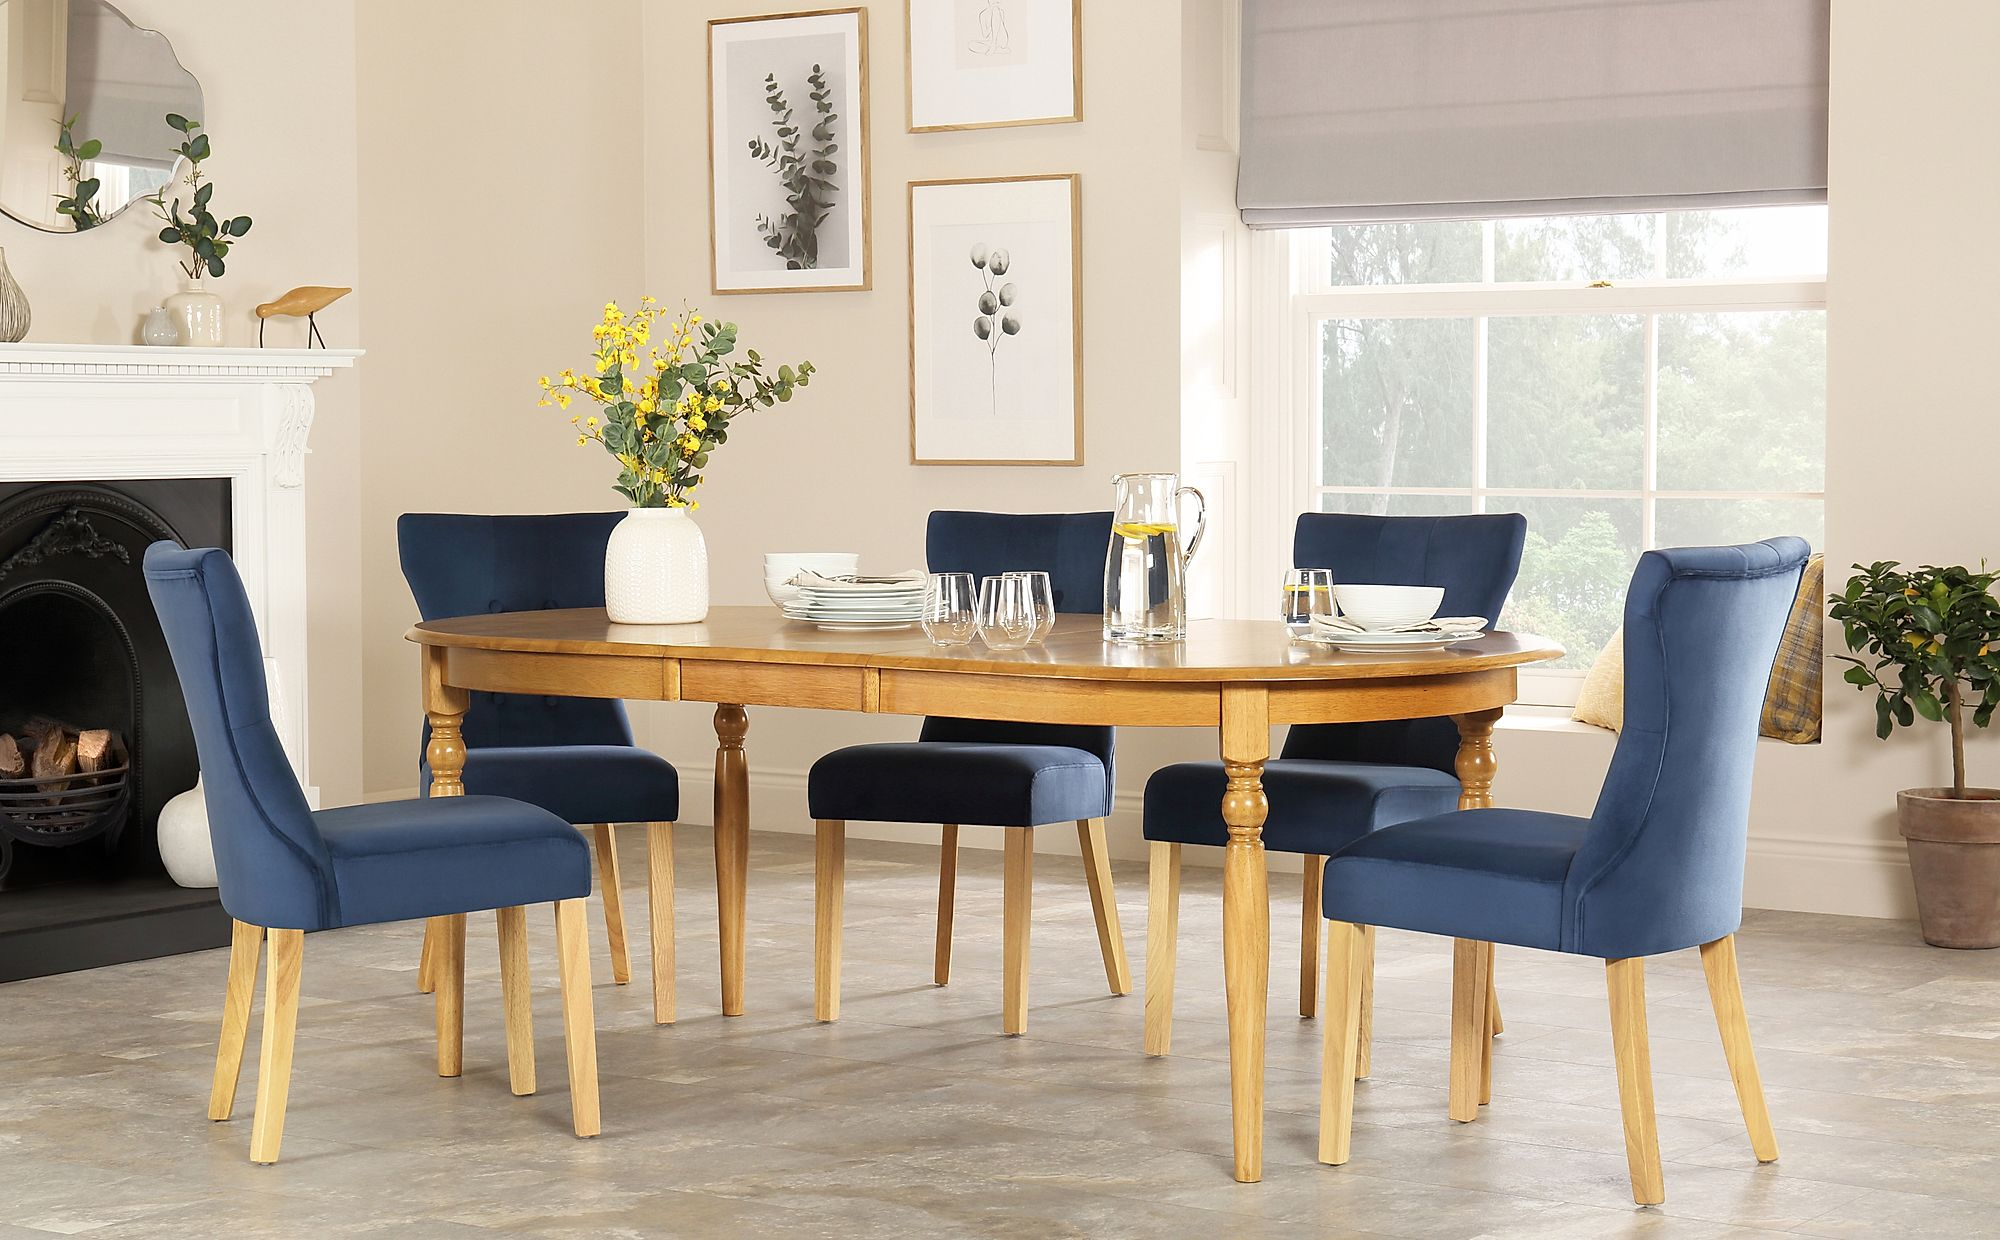 Details About Albany Oval Oak Extending Dining Table With 4 6 8 Bewley Blue Velvet Chairs